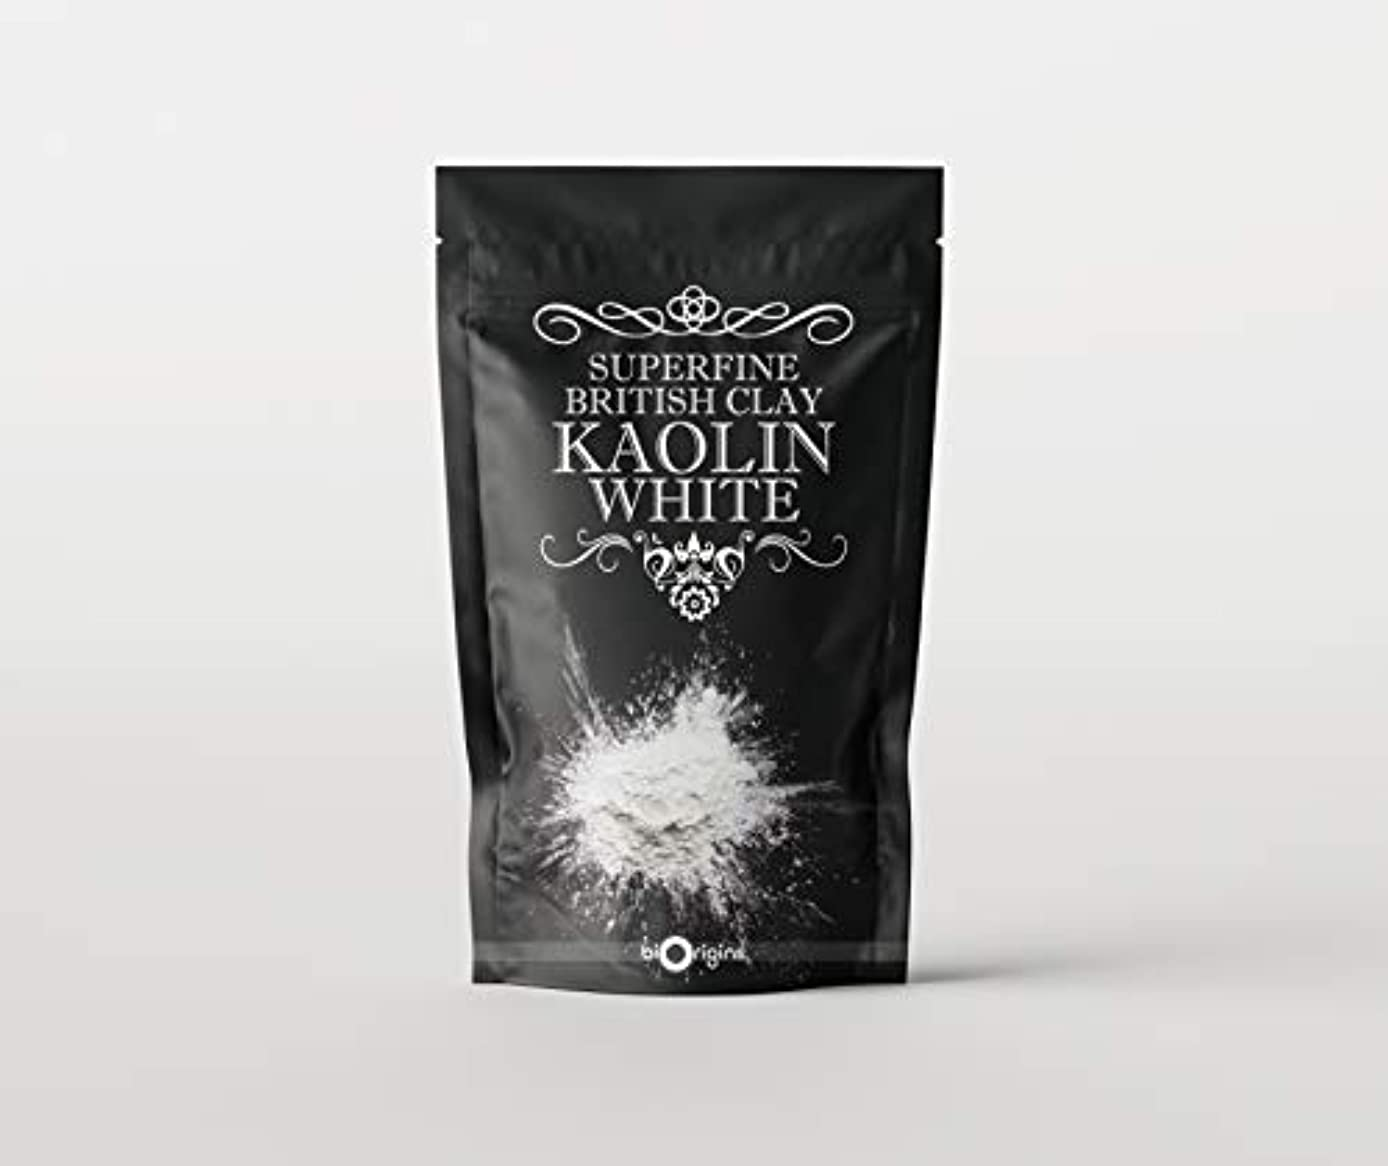 Kaolin White Superfine British Clay - 500g